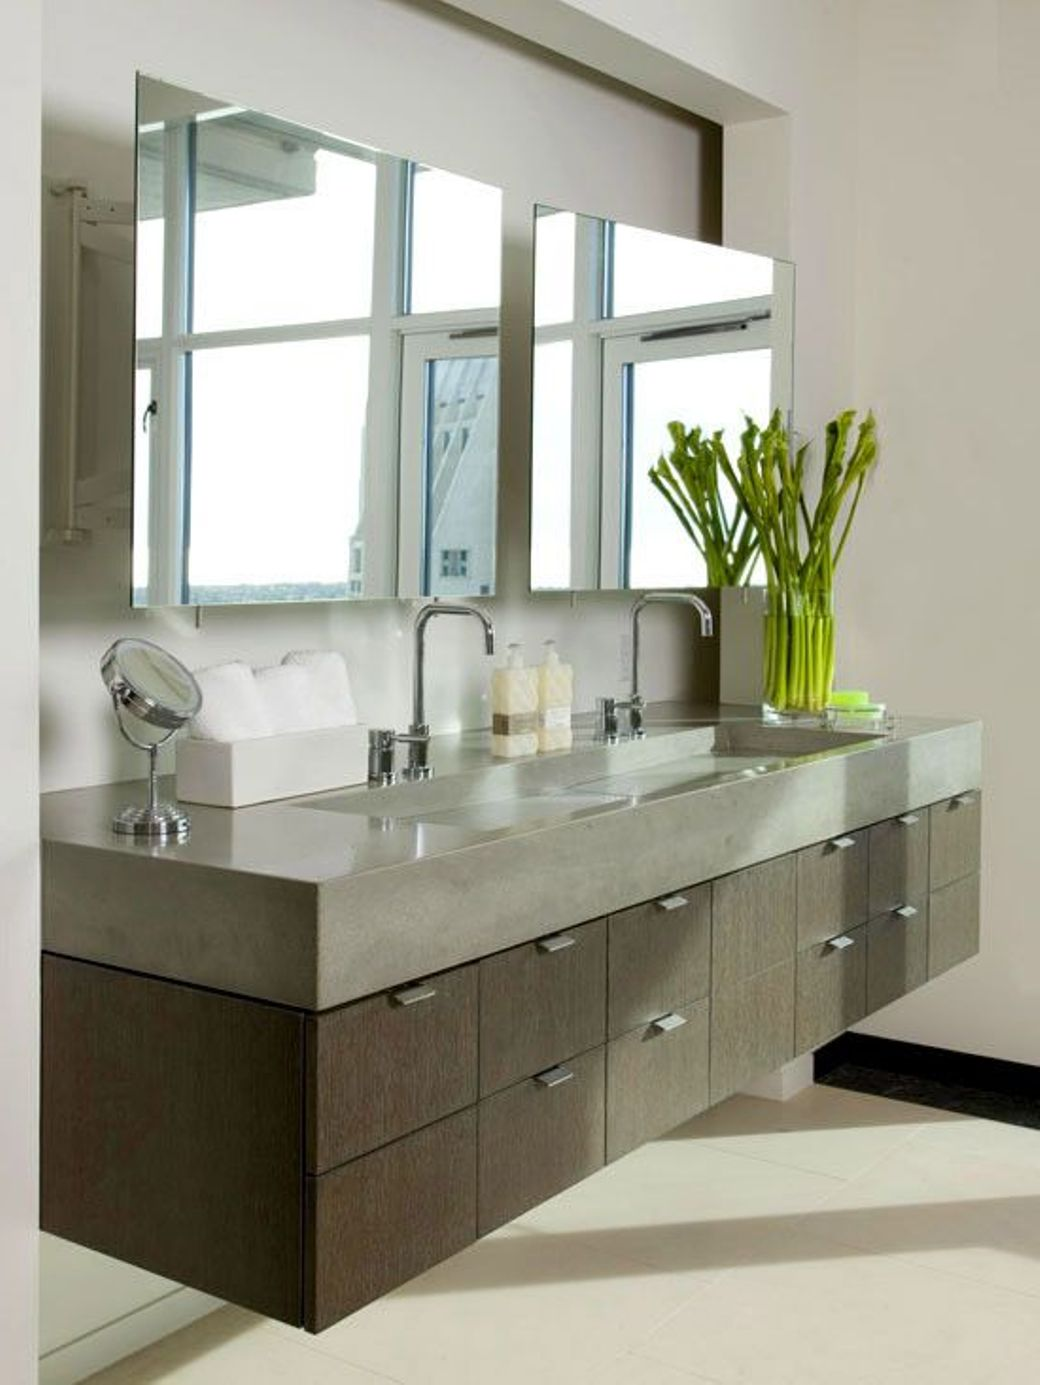 Simple-Mirror-above-Floating-Bathroom-Vanity-and-Fresh-Flower-Decor-beside-Double-Sink